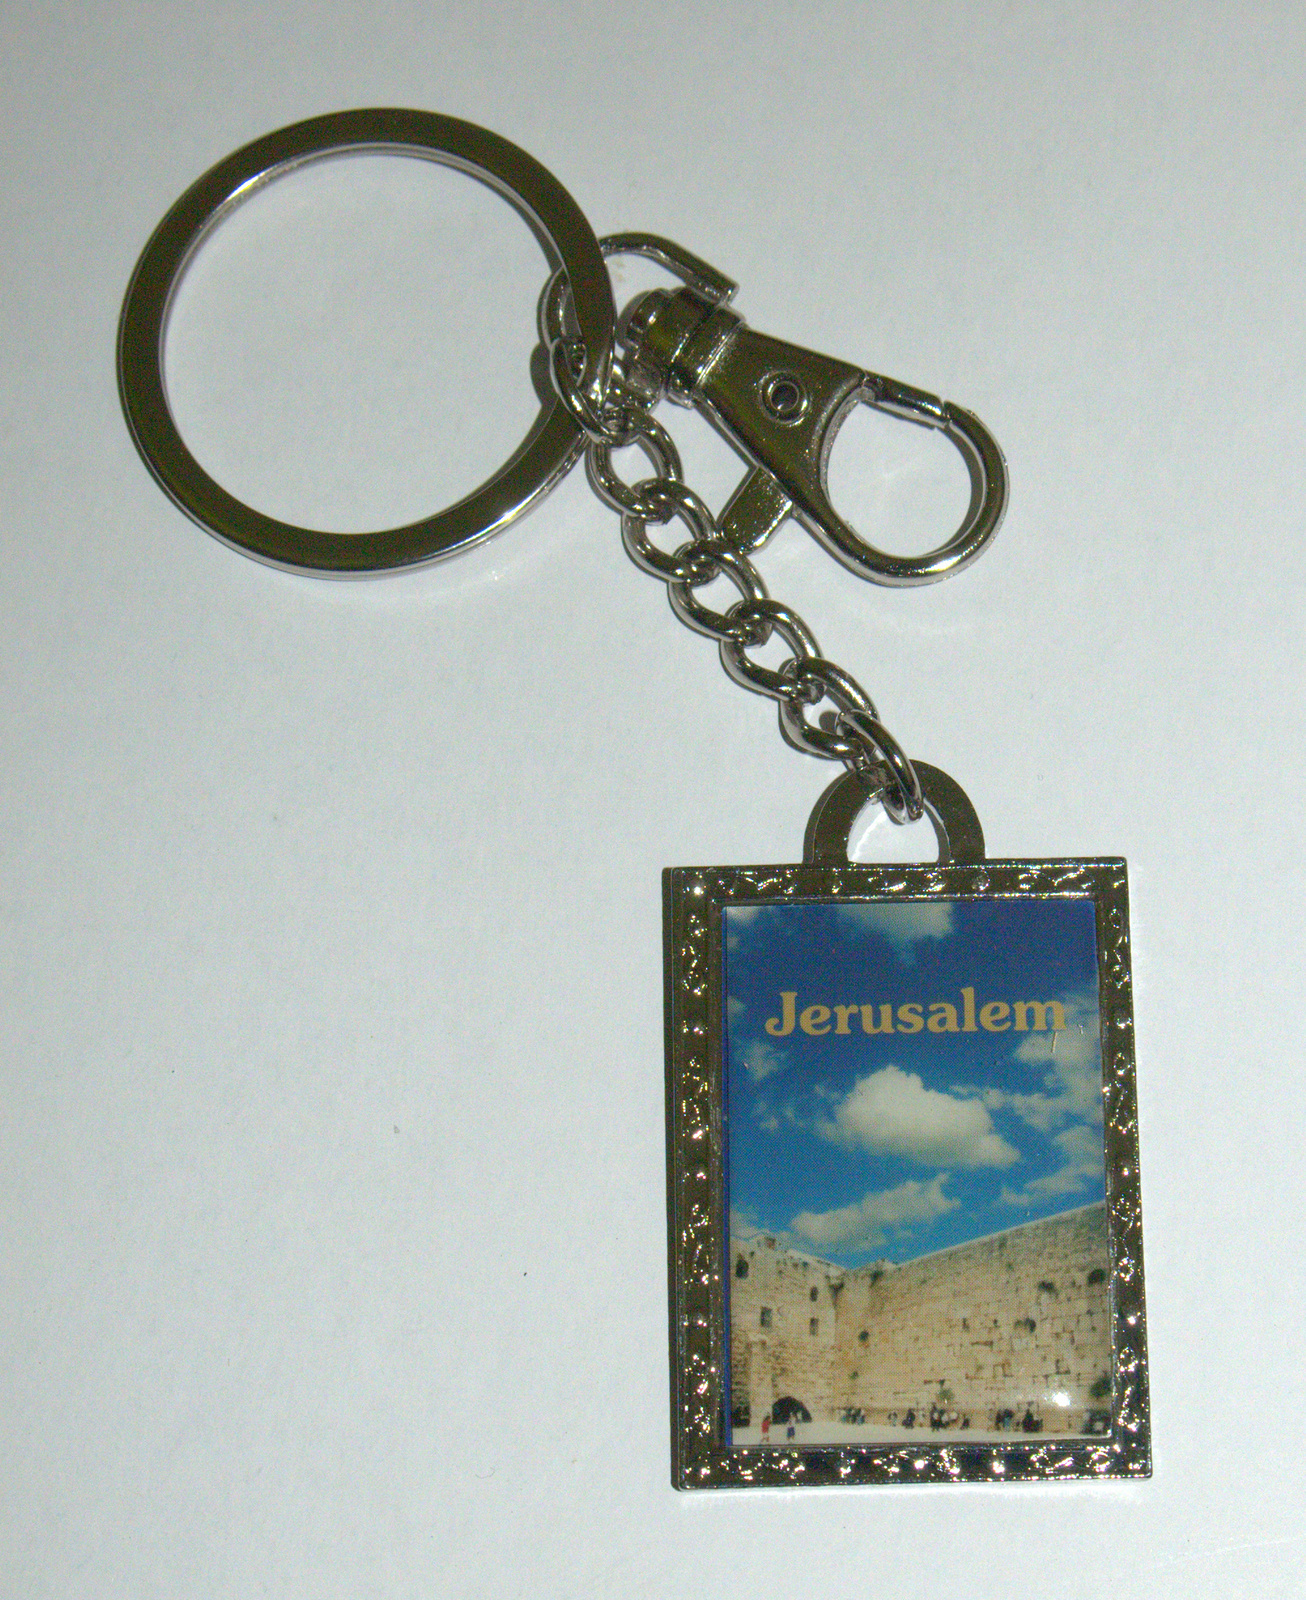 Judaica Keyring Keychain Key Holder Traveler Prayer The Kotel Wailing Wall